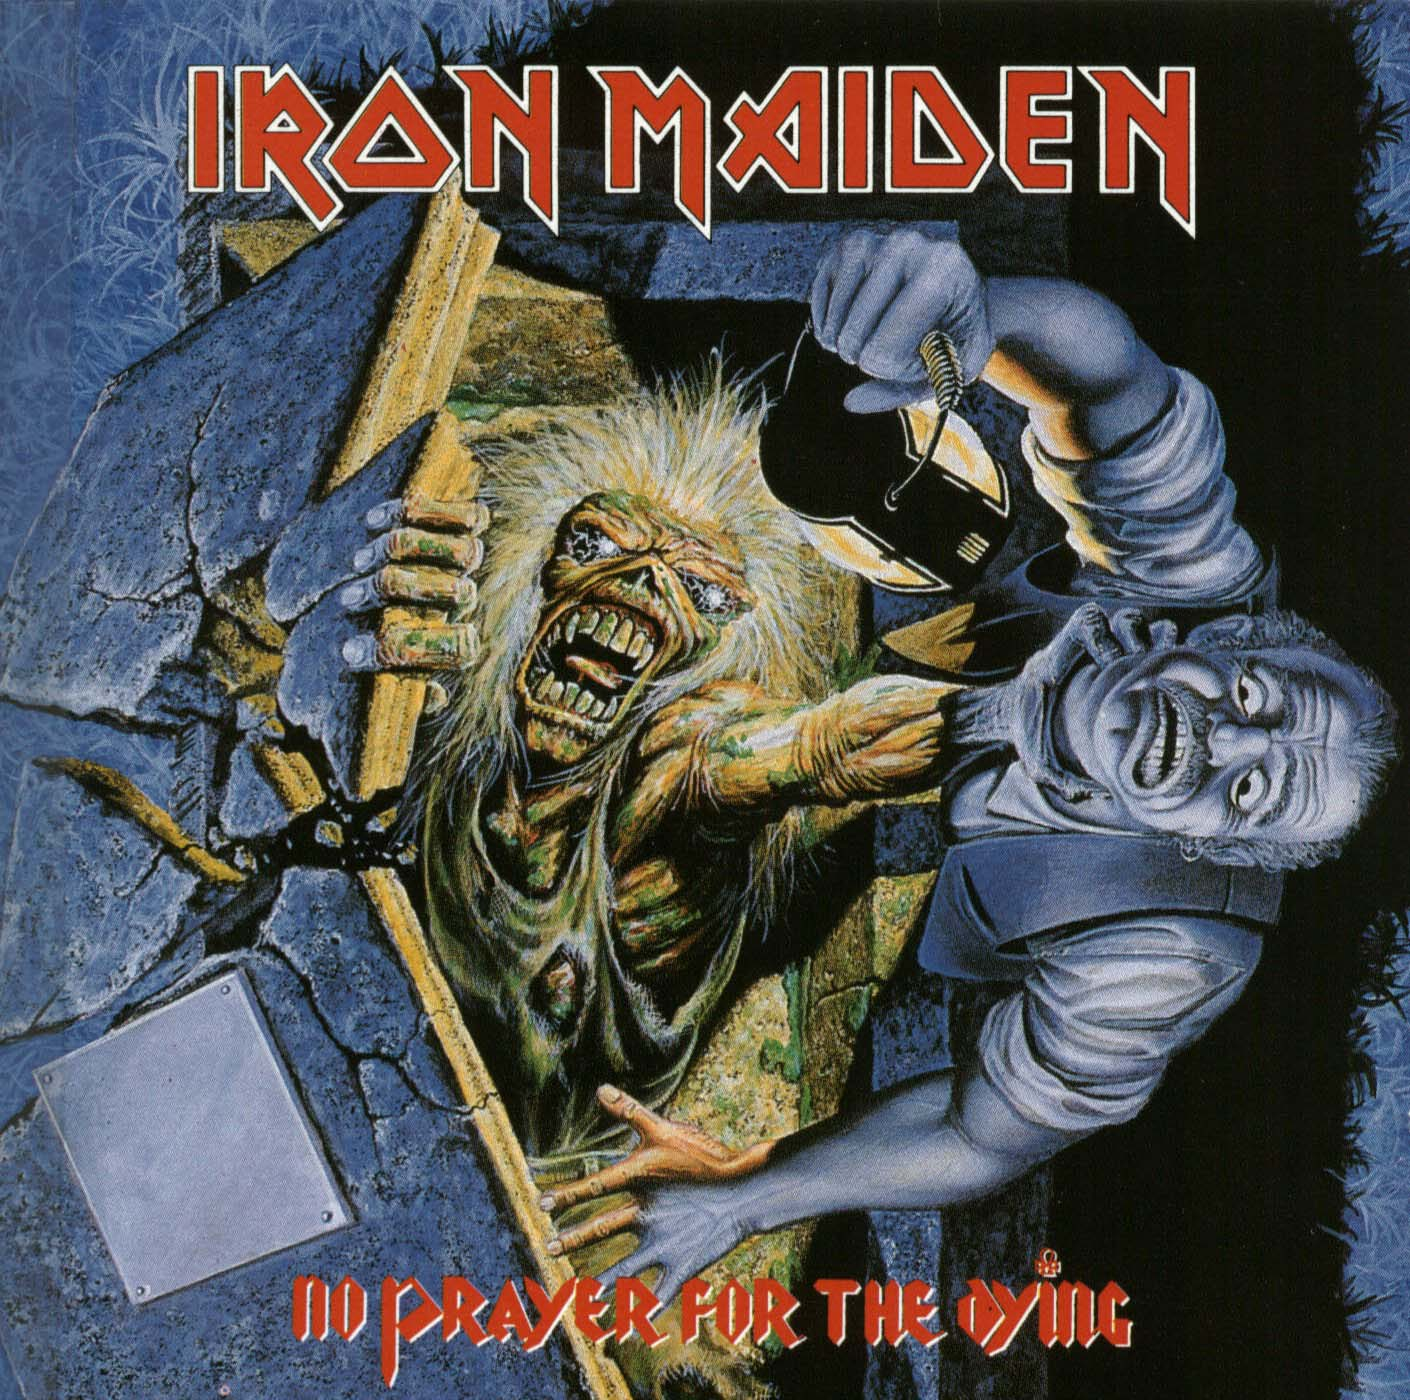 Iron Maiden from Worst to Best: 15-13